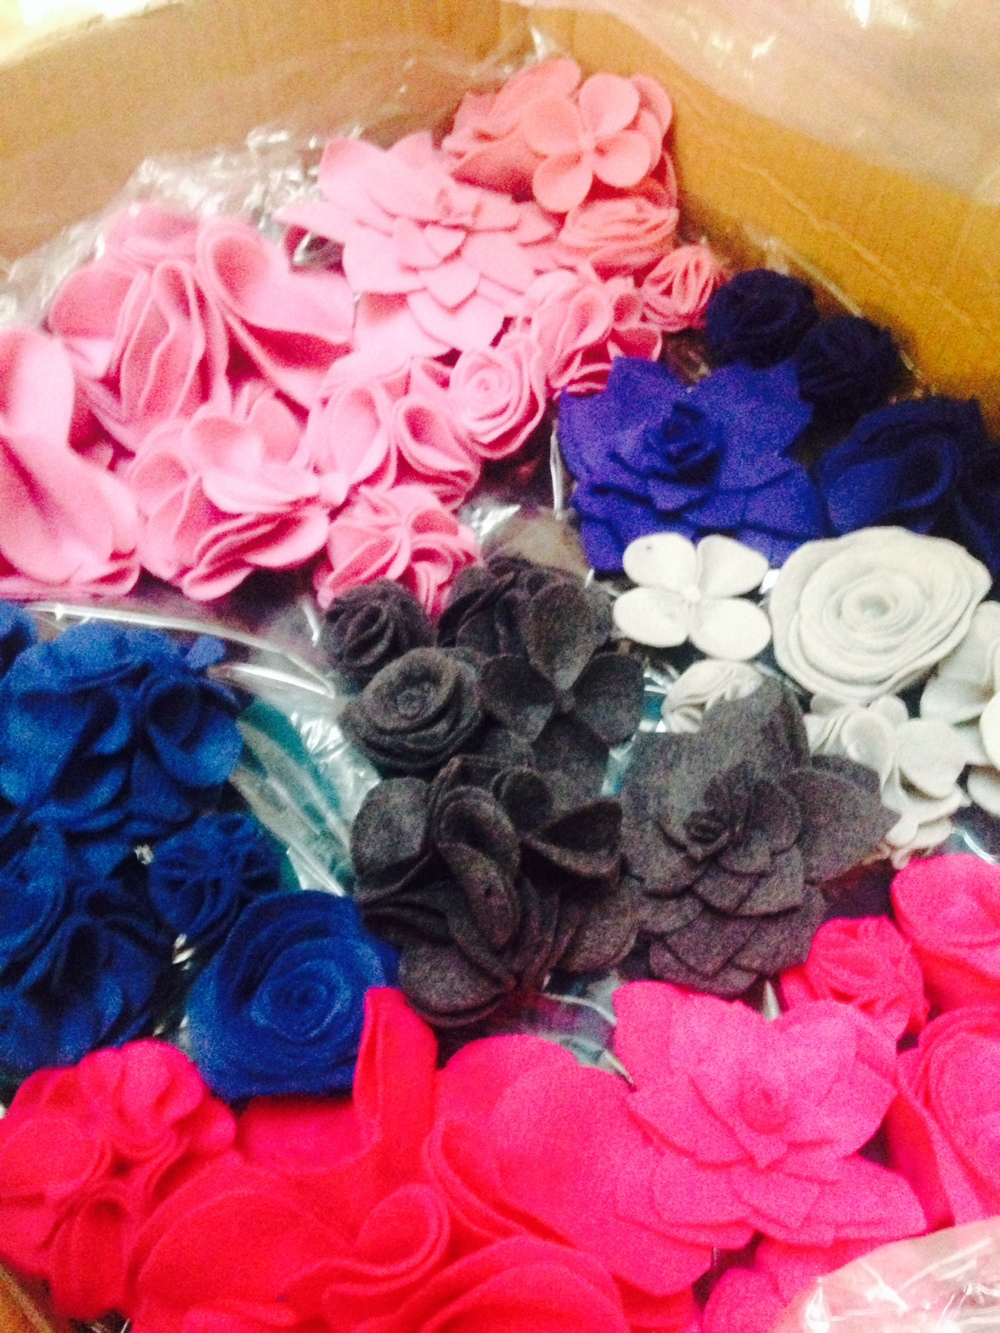 FELT FLOWERS HANDMADE AT ZOE BREWER LONDON HQ